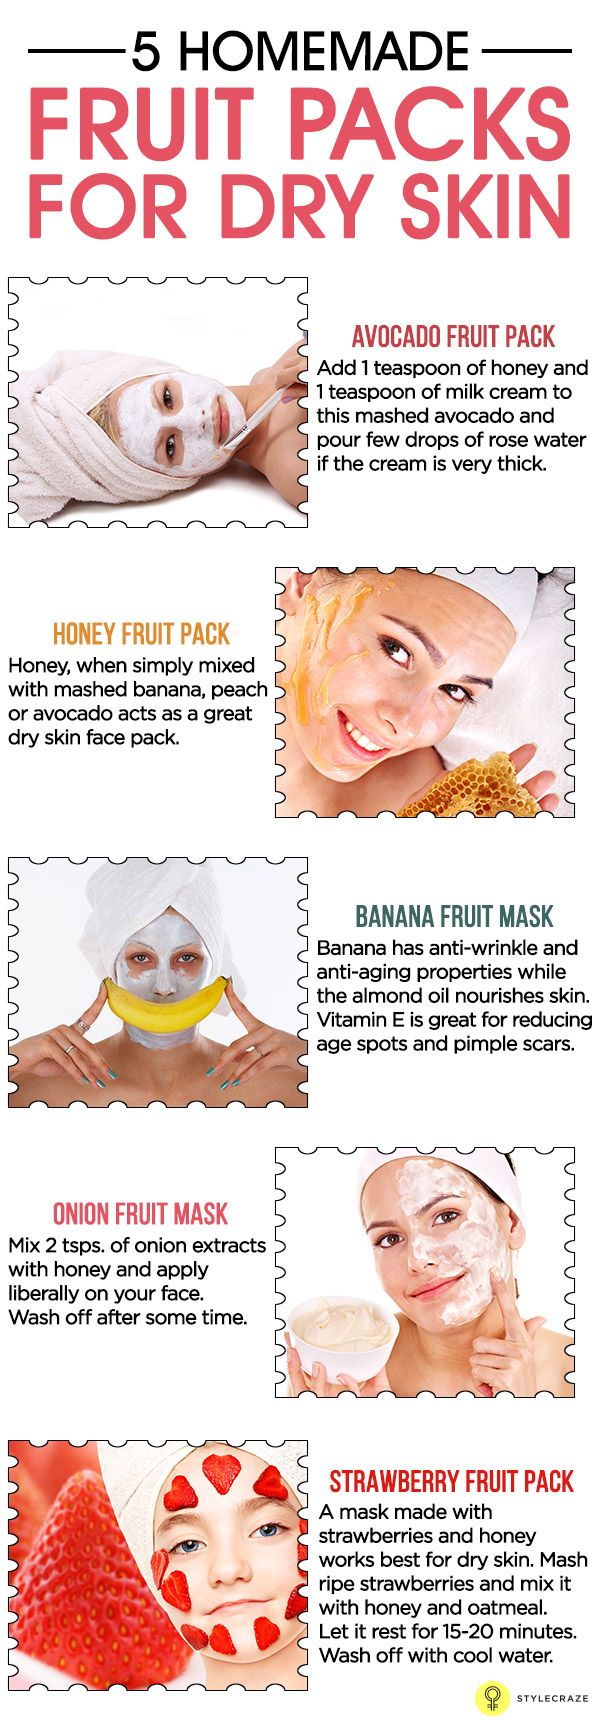 17 homemade face packs for dry skin | dry skin, facial and face masks